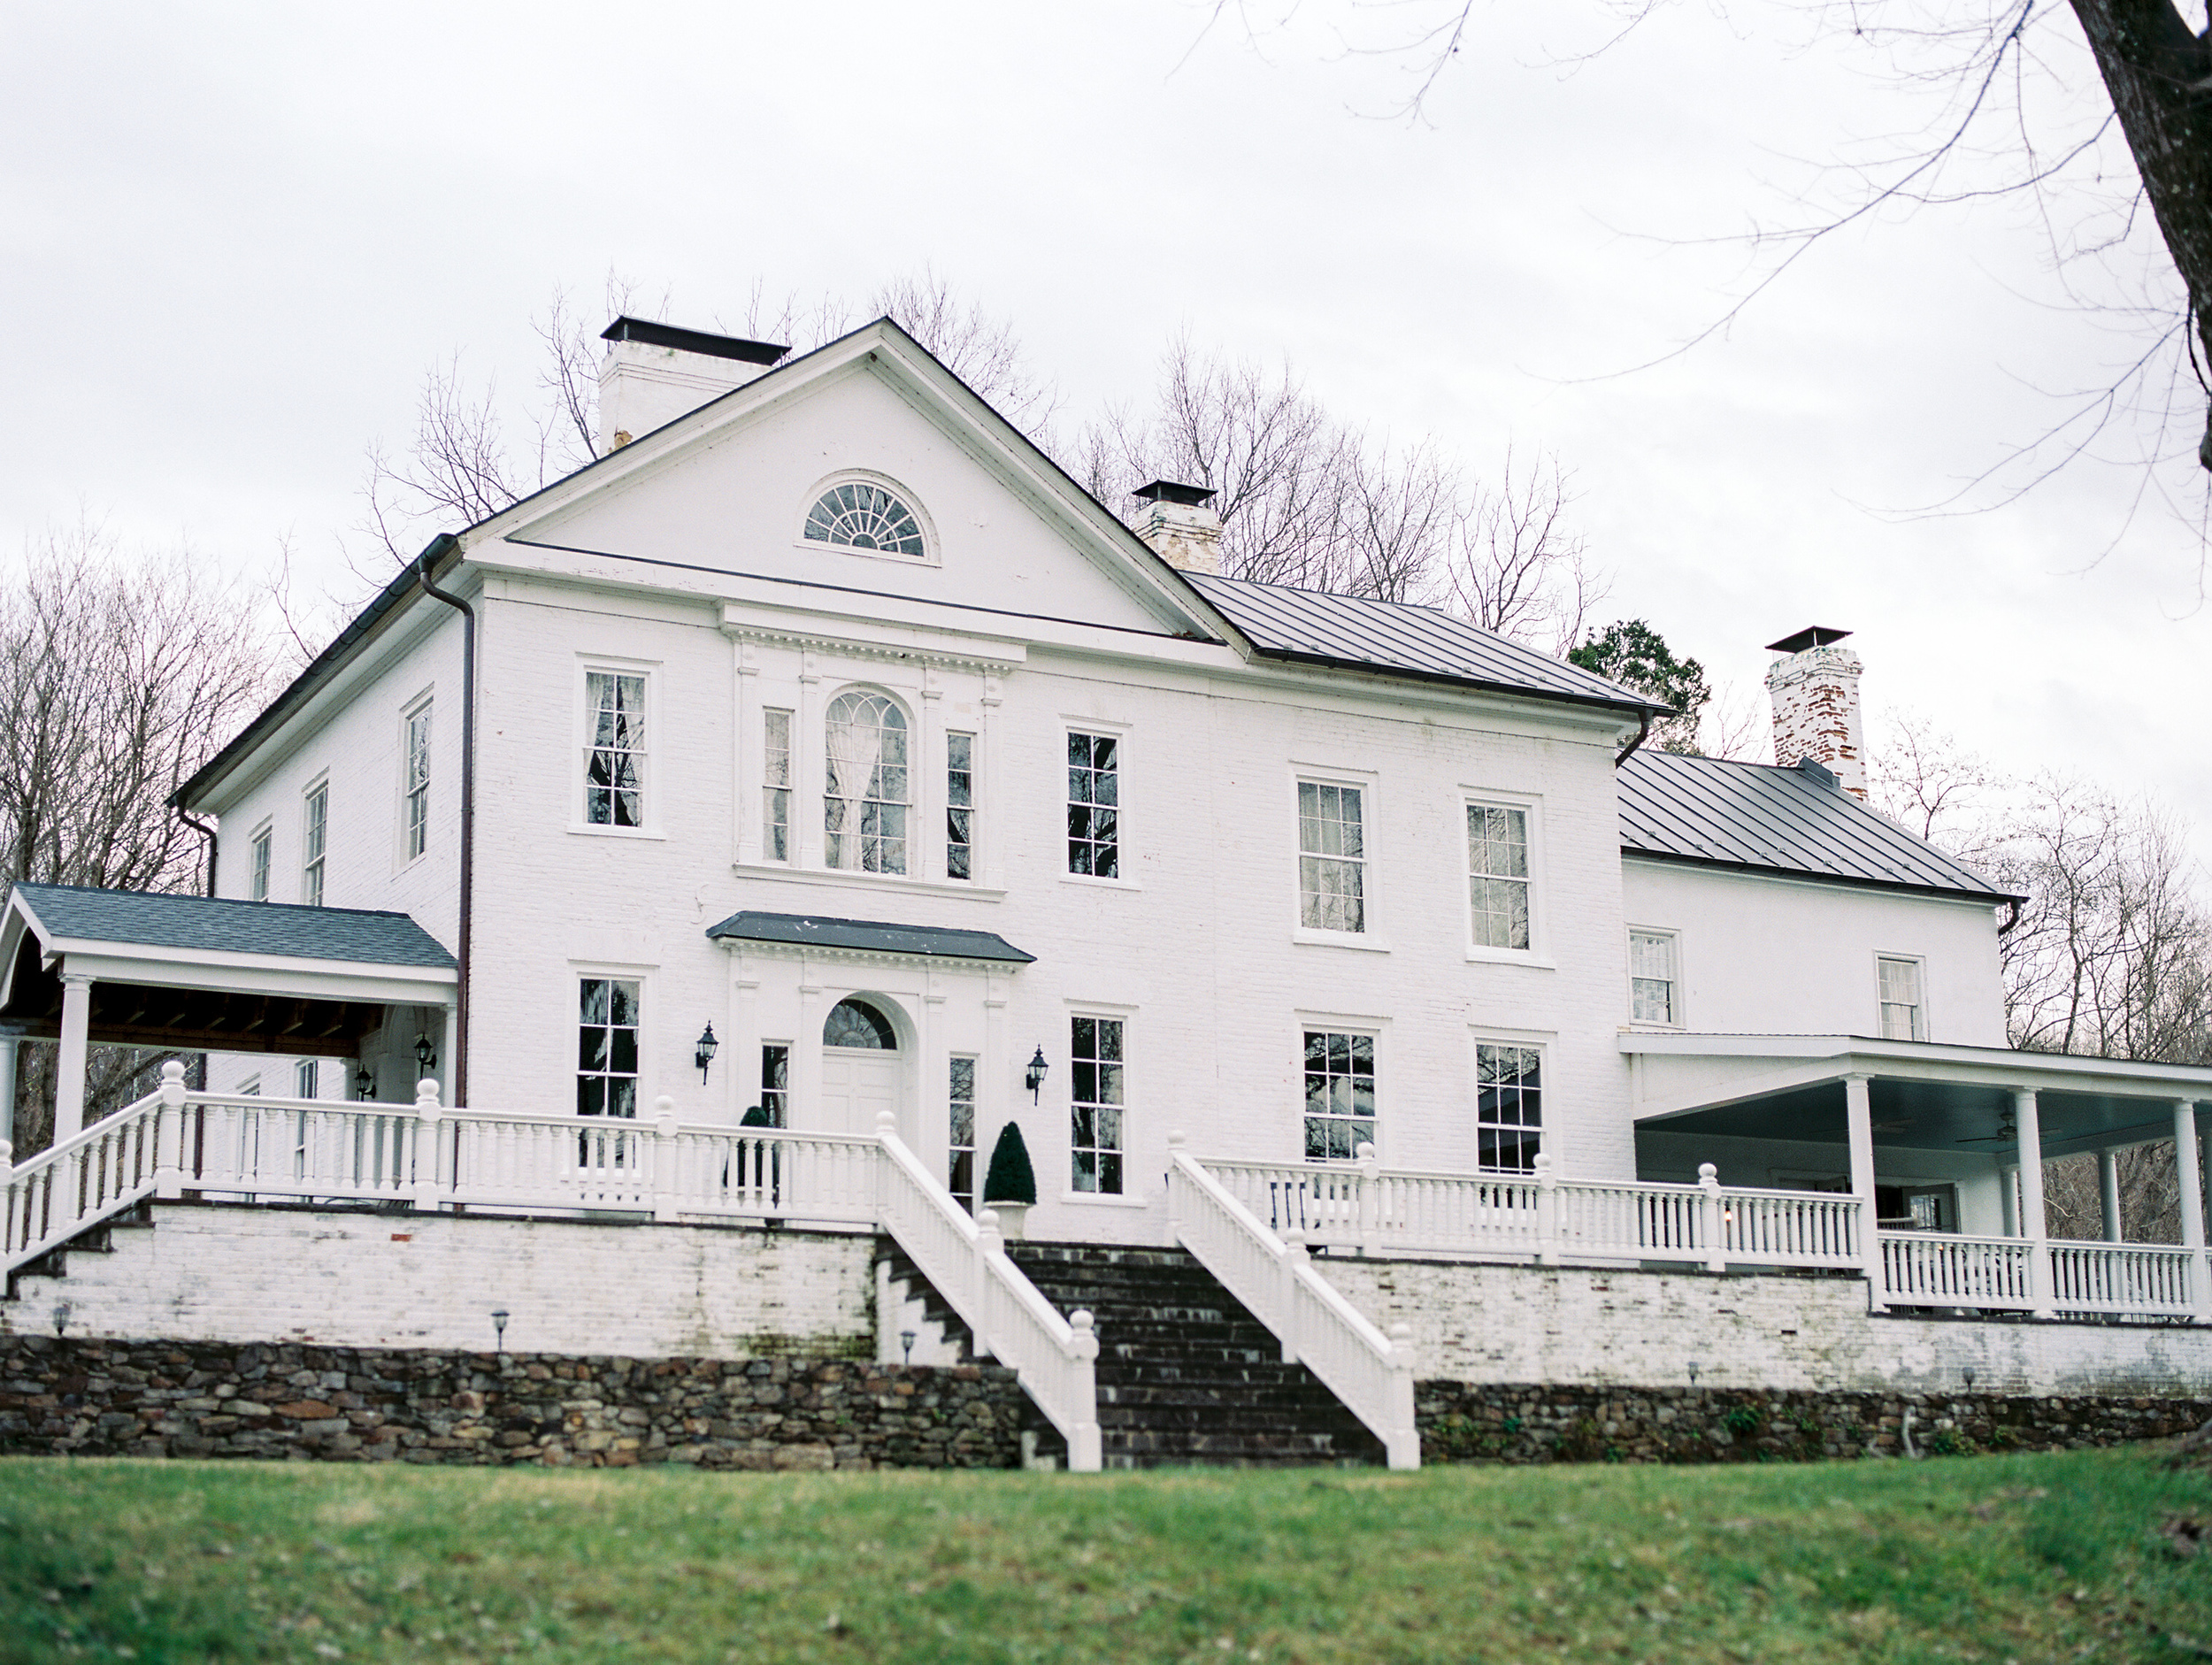 the retreat at cool spring intimate virginia wedding venue fine art film wedding photographer lissa ryan photography